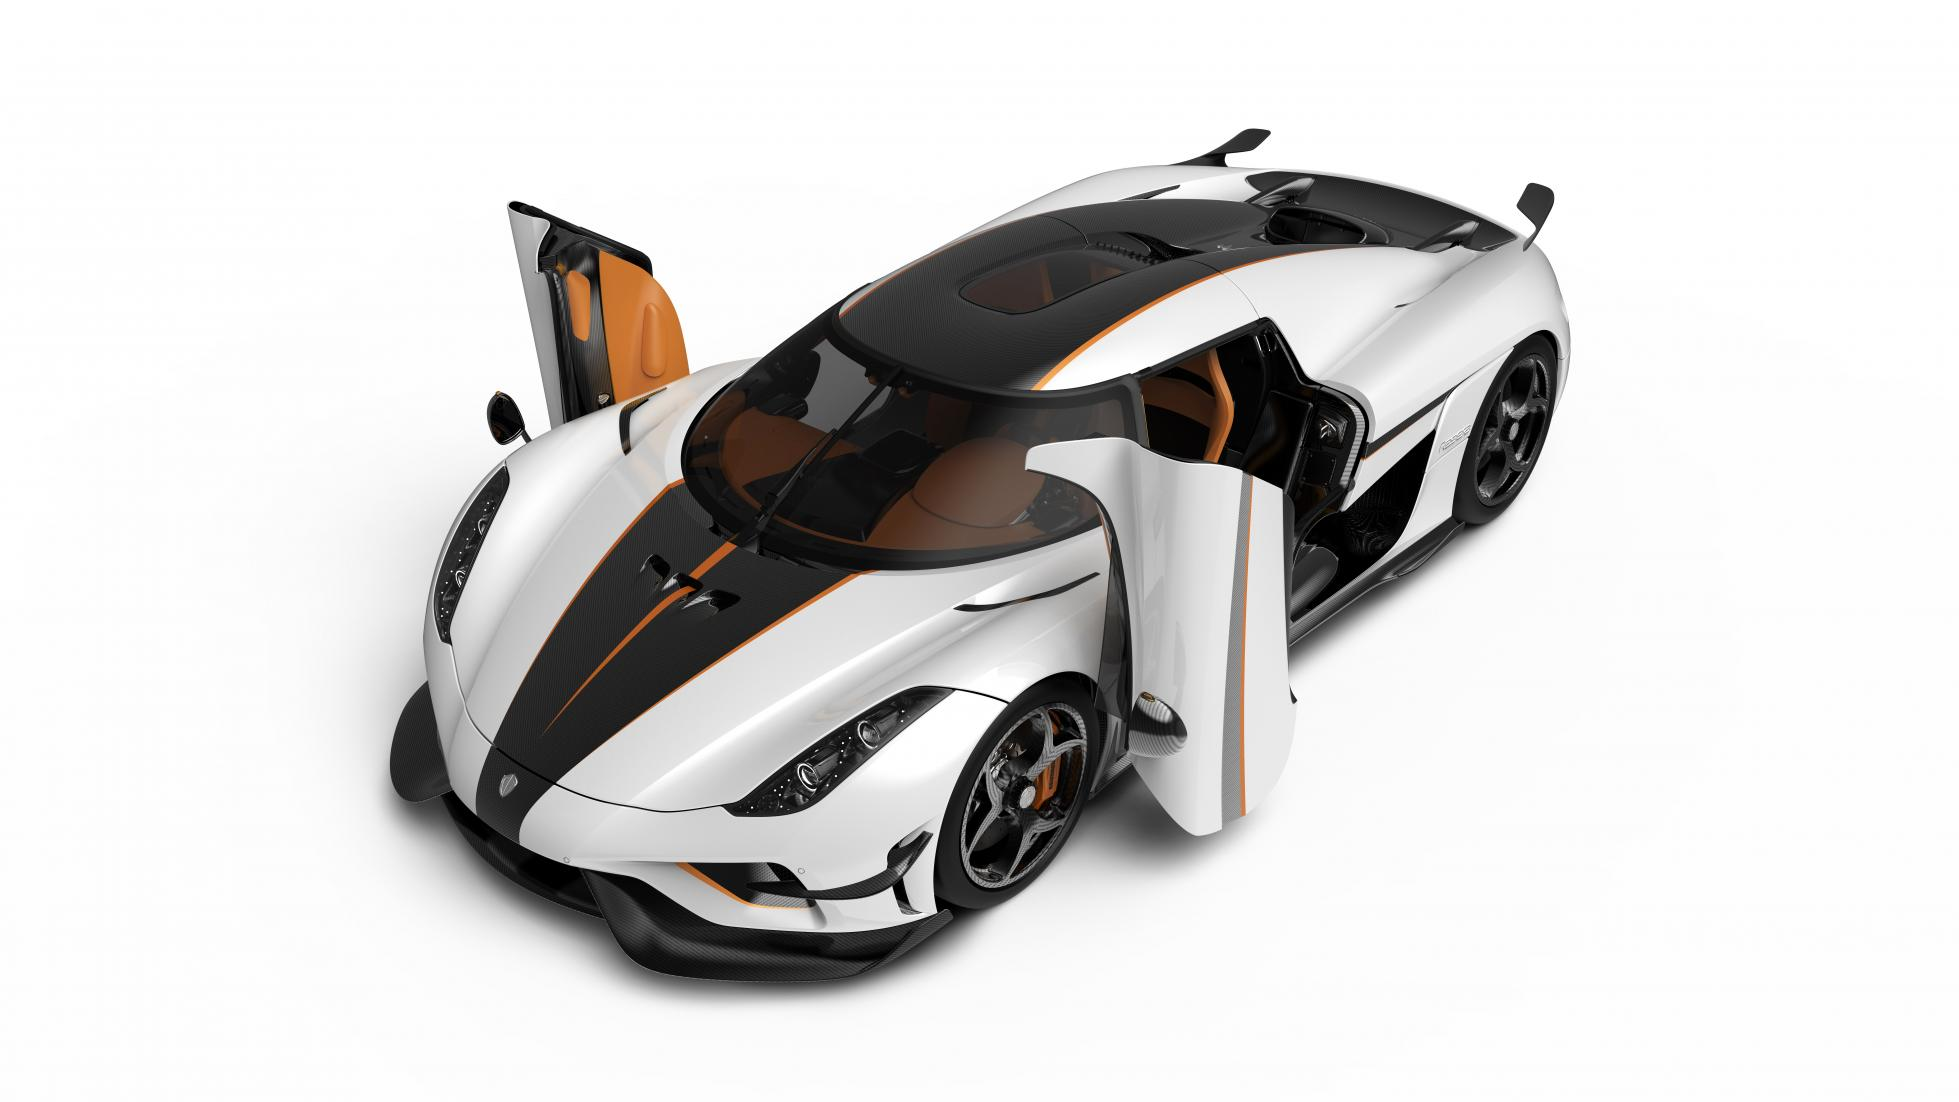 How To Buy A Hypercar On Finance